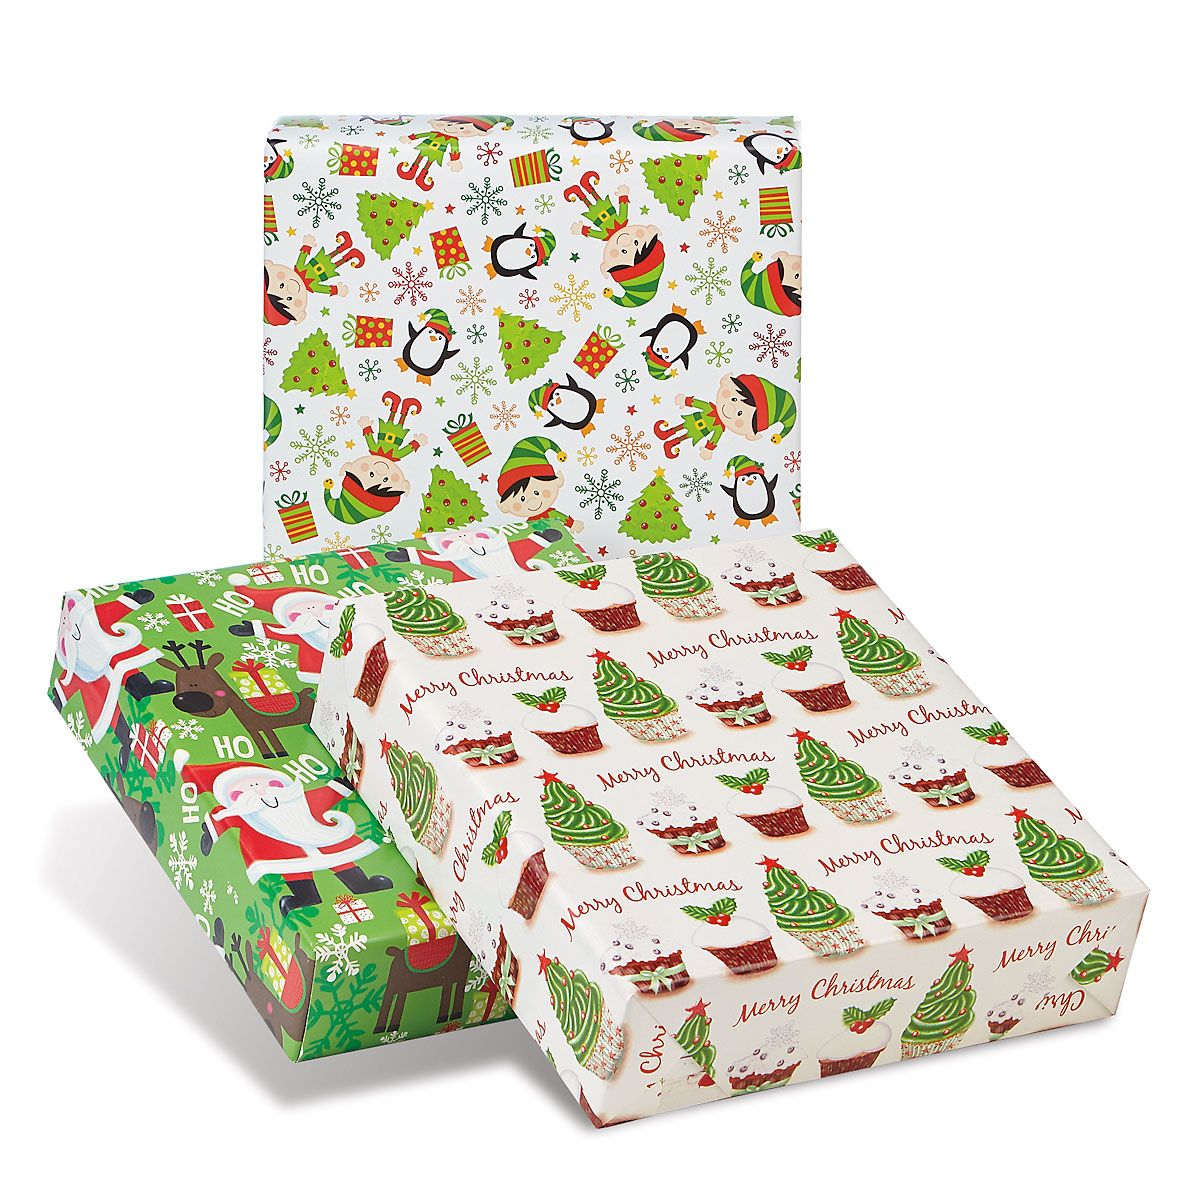 Green Collection Jumbo Rolled Christmas Wrapping Paper Set